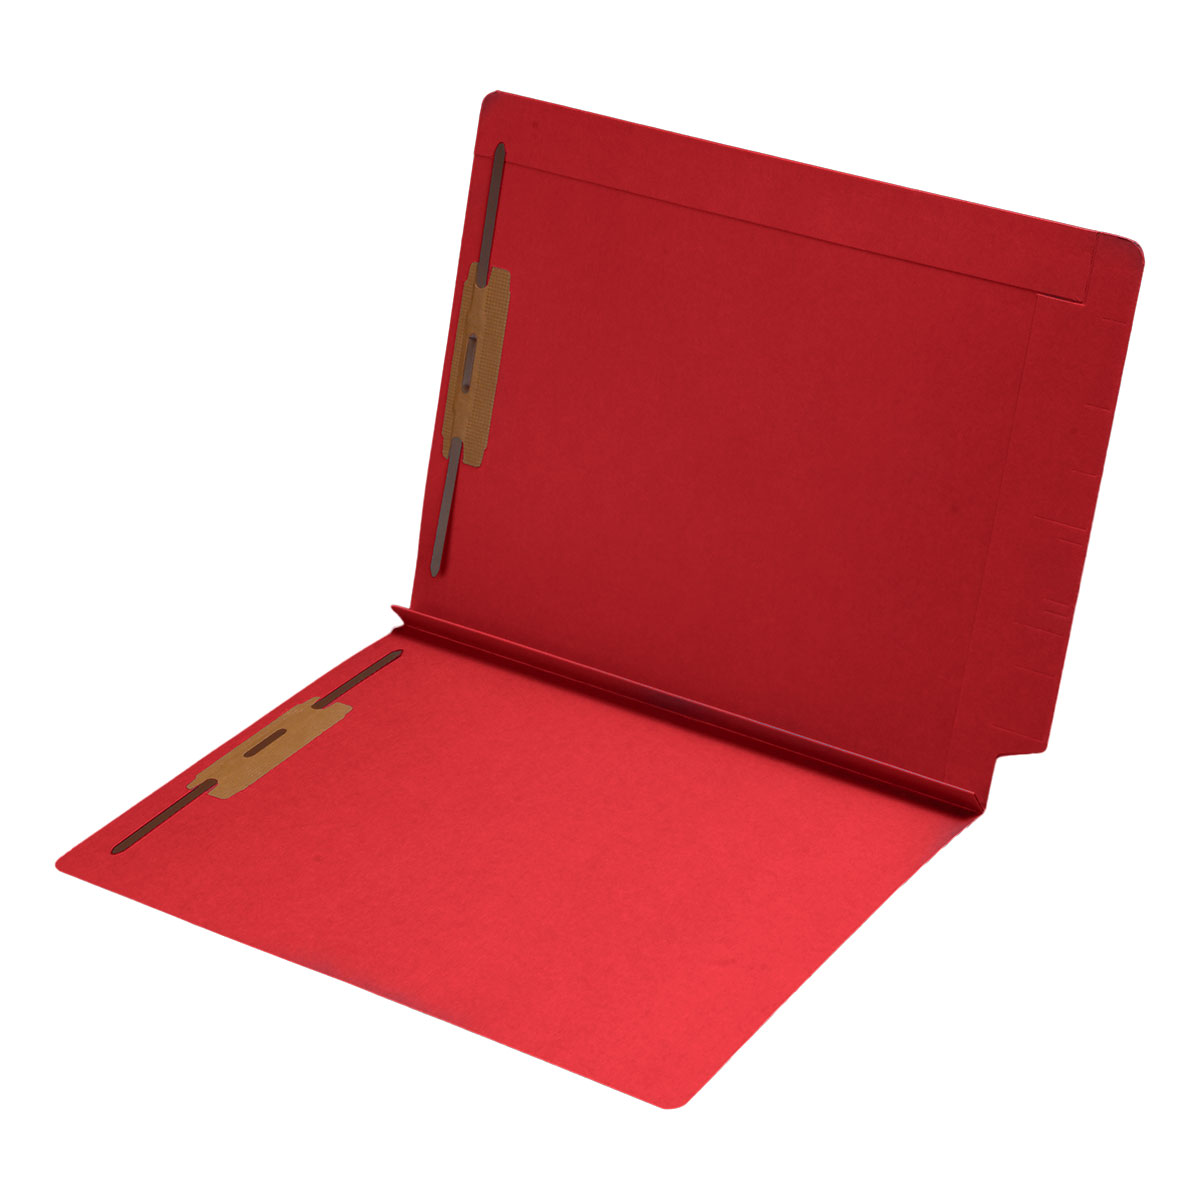 S-9078-RED - 14 pt Color Folders, Full Cut 2-Ply End Tab, Letter Size, 1-1/2